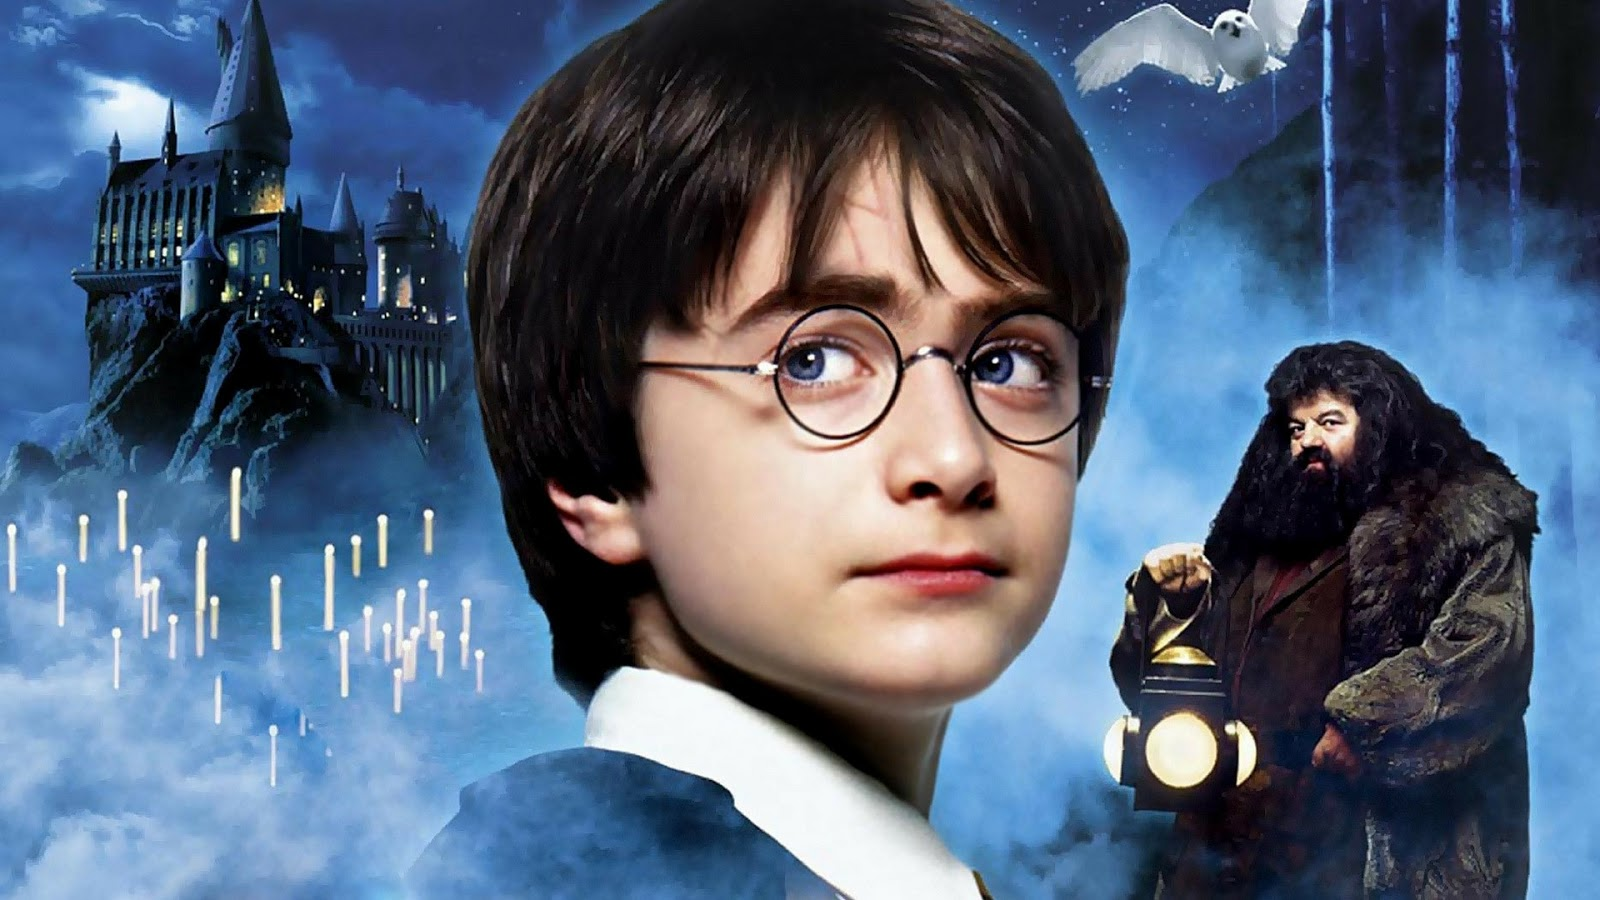 harry potter, movies, panasonic, first year, marathon, hogwarts, daniel radcliffe